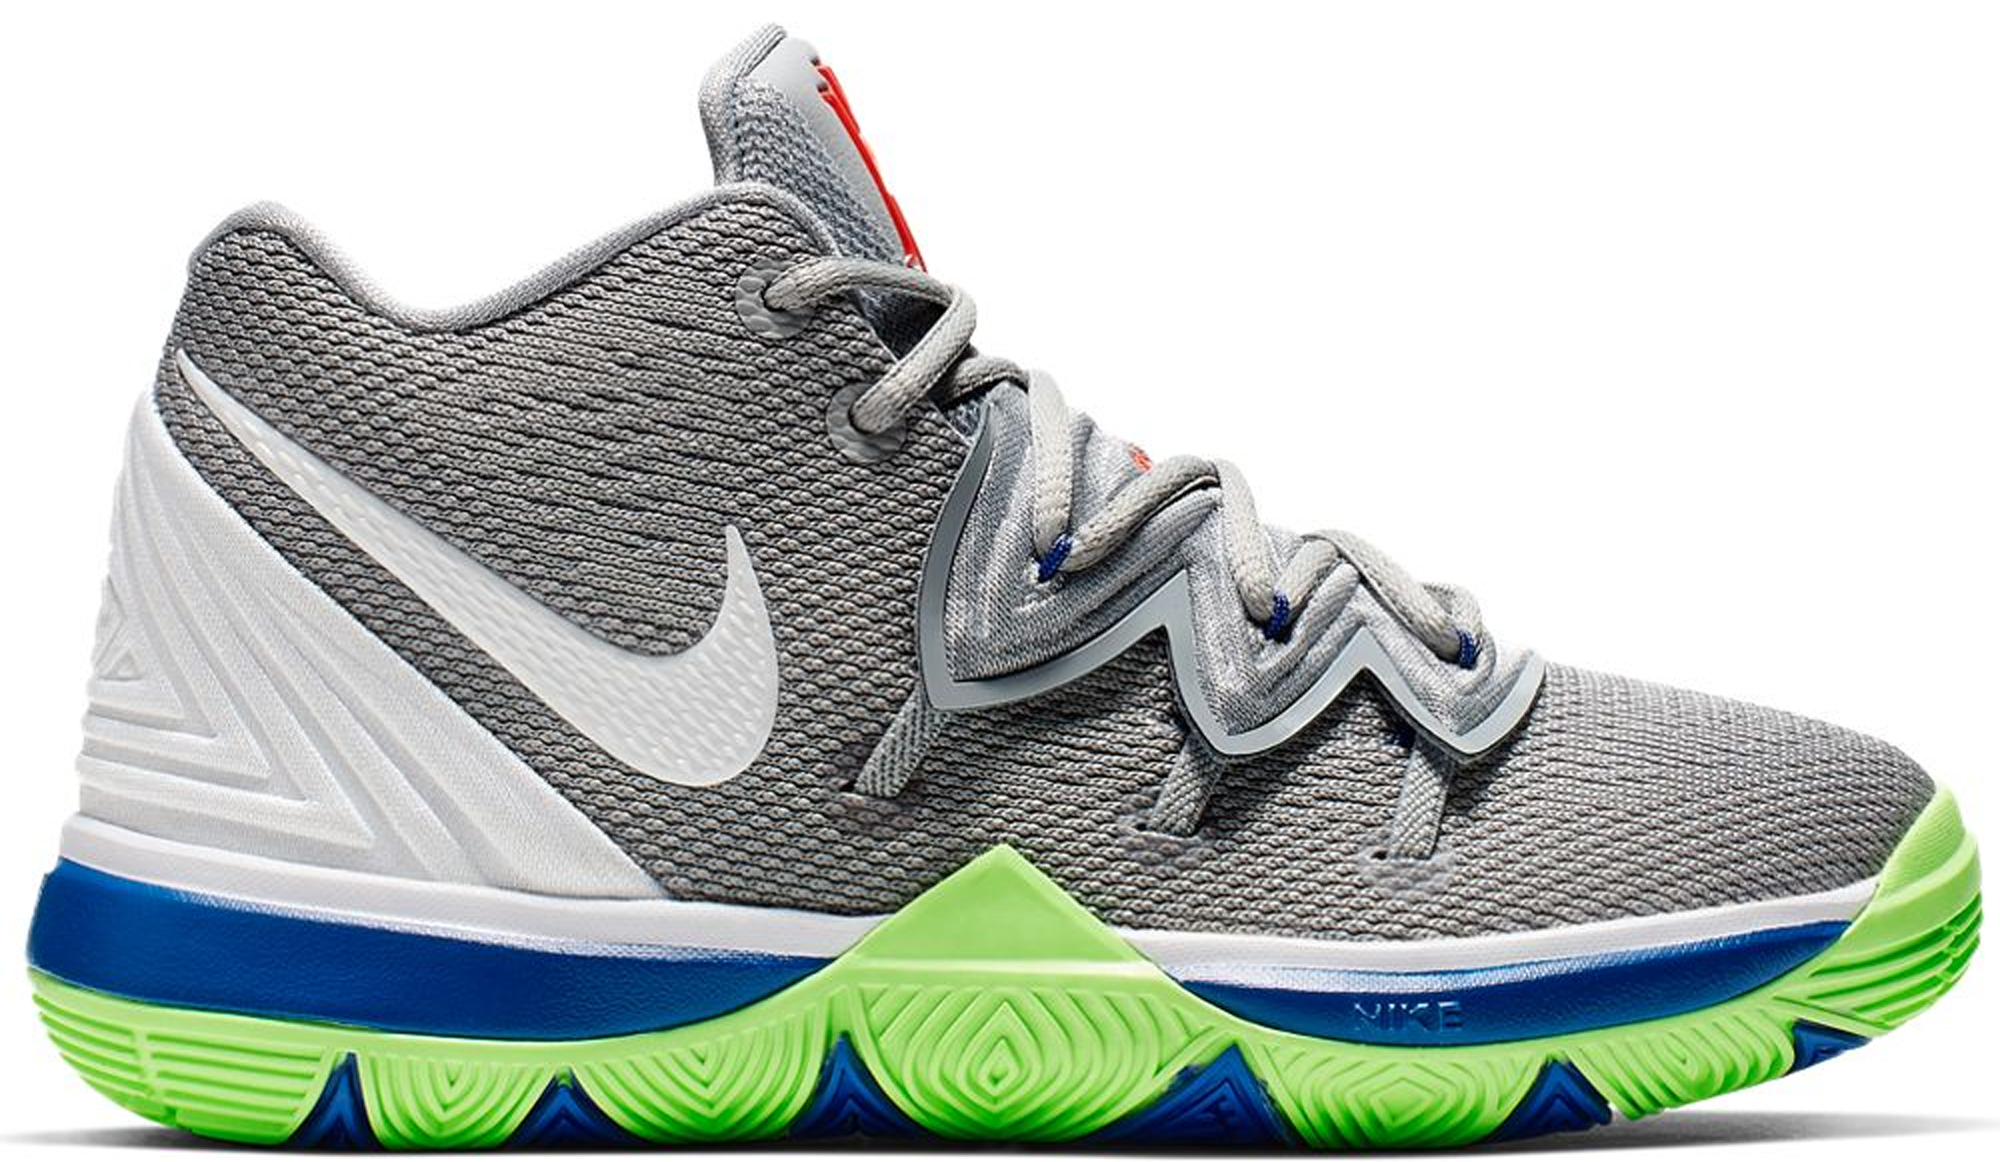 Nike Kyrie 5 Wolf Grey Lime Blast (Ps) In Wolf Grey/White-Lime Blast